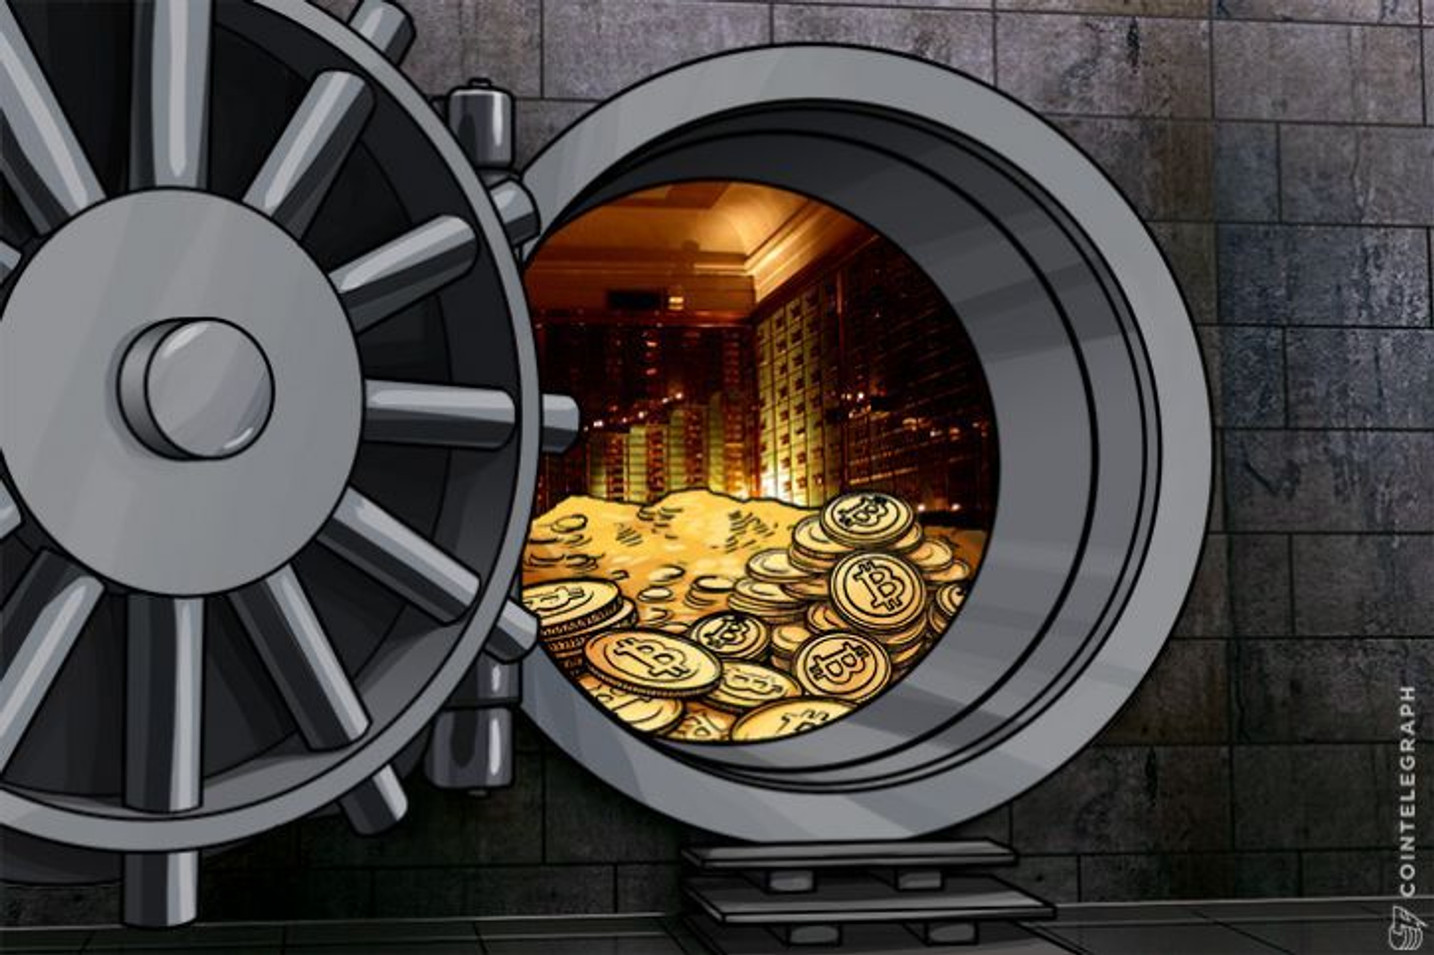 Finland: Authorities Unsure How To Store 2,000 Seized Bitcoins After Treasury Guidelines